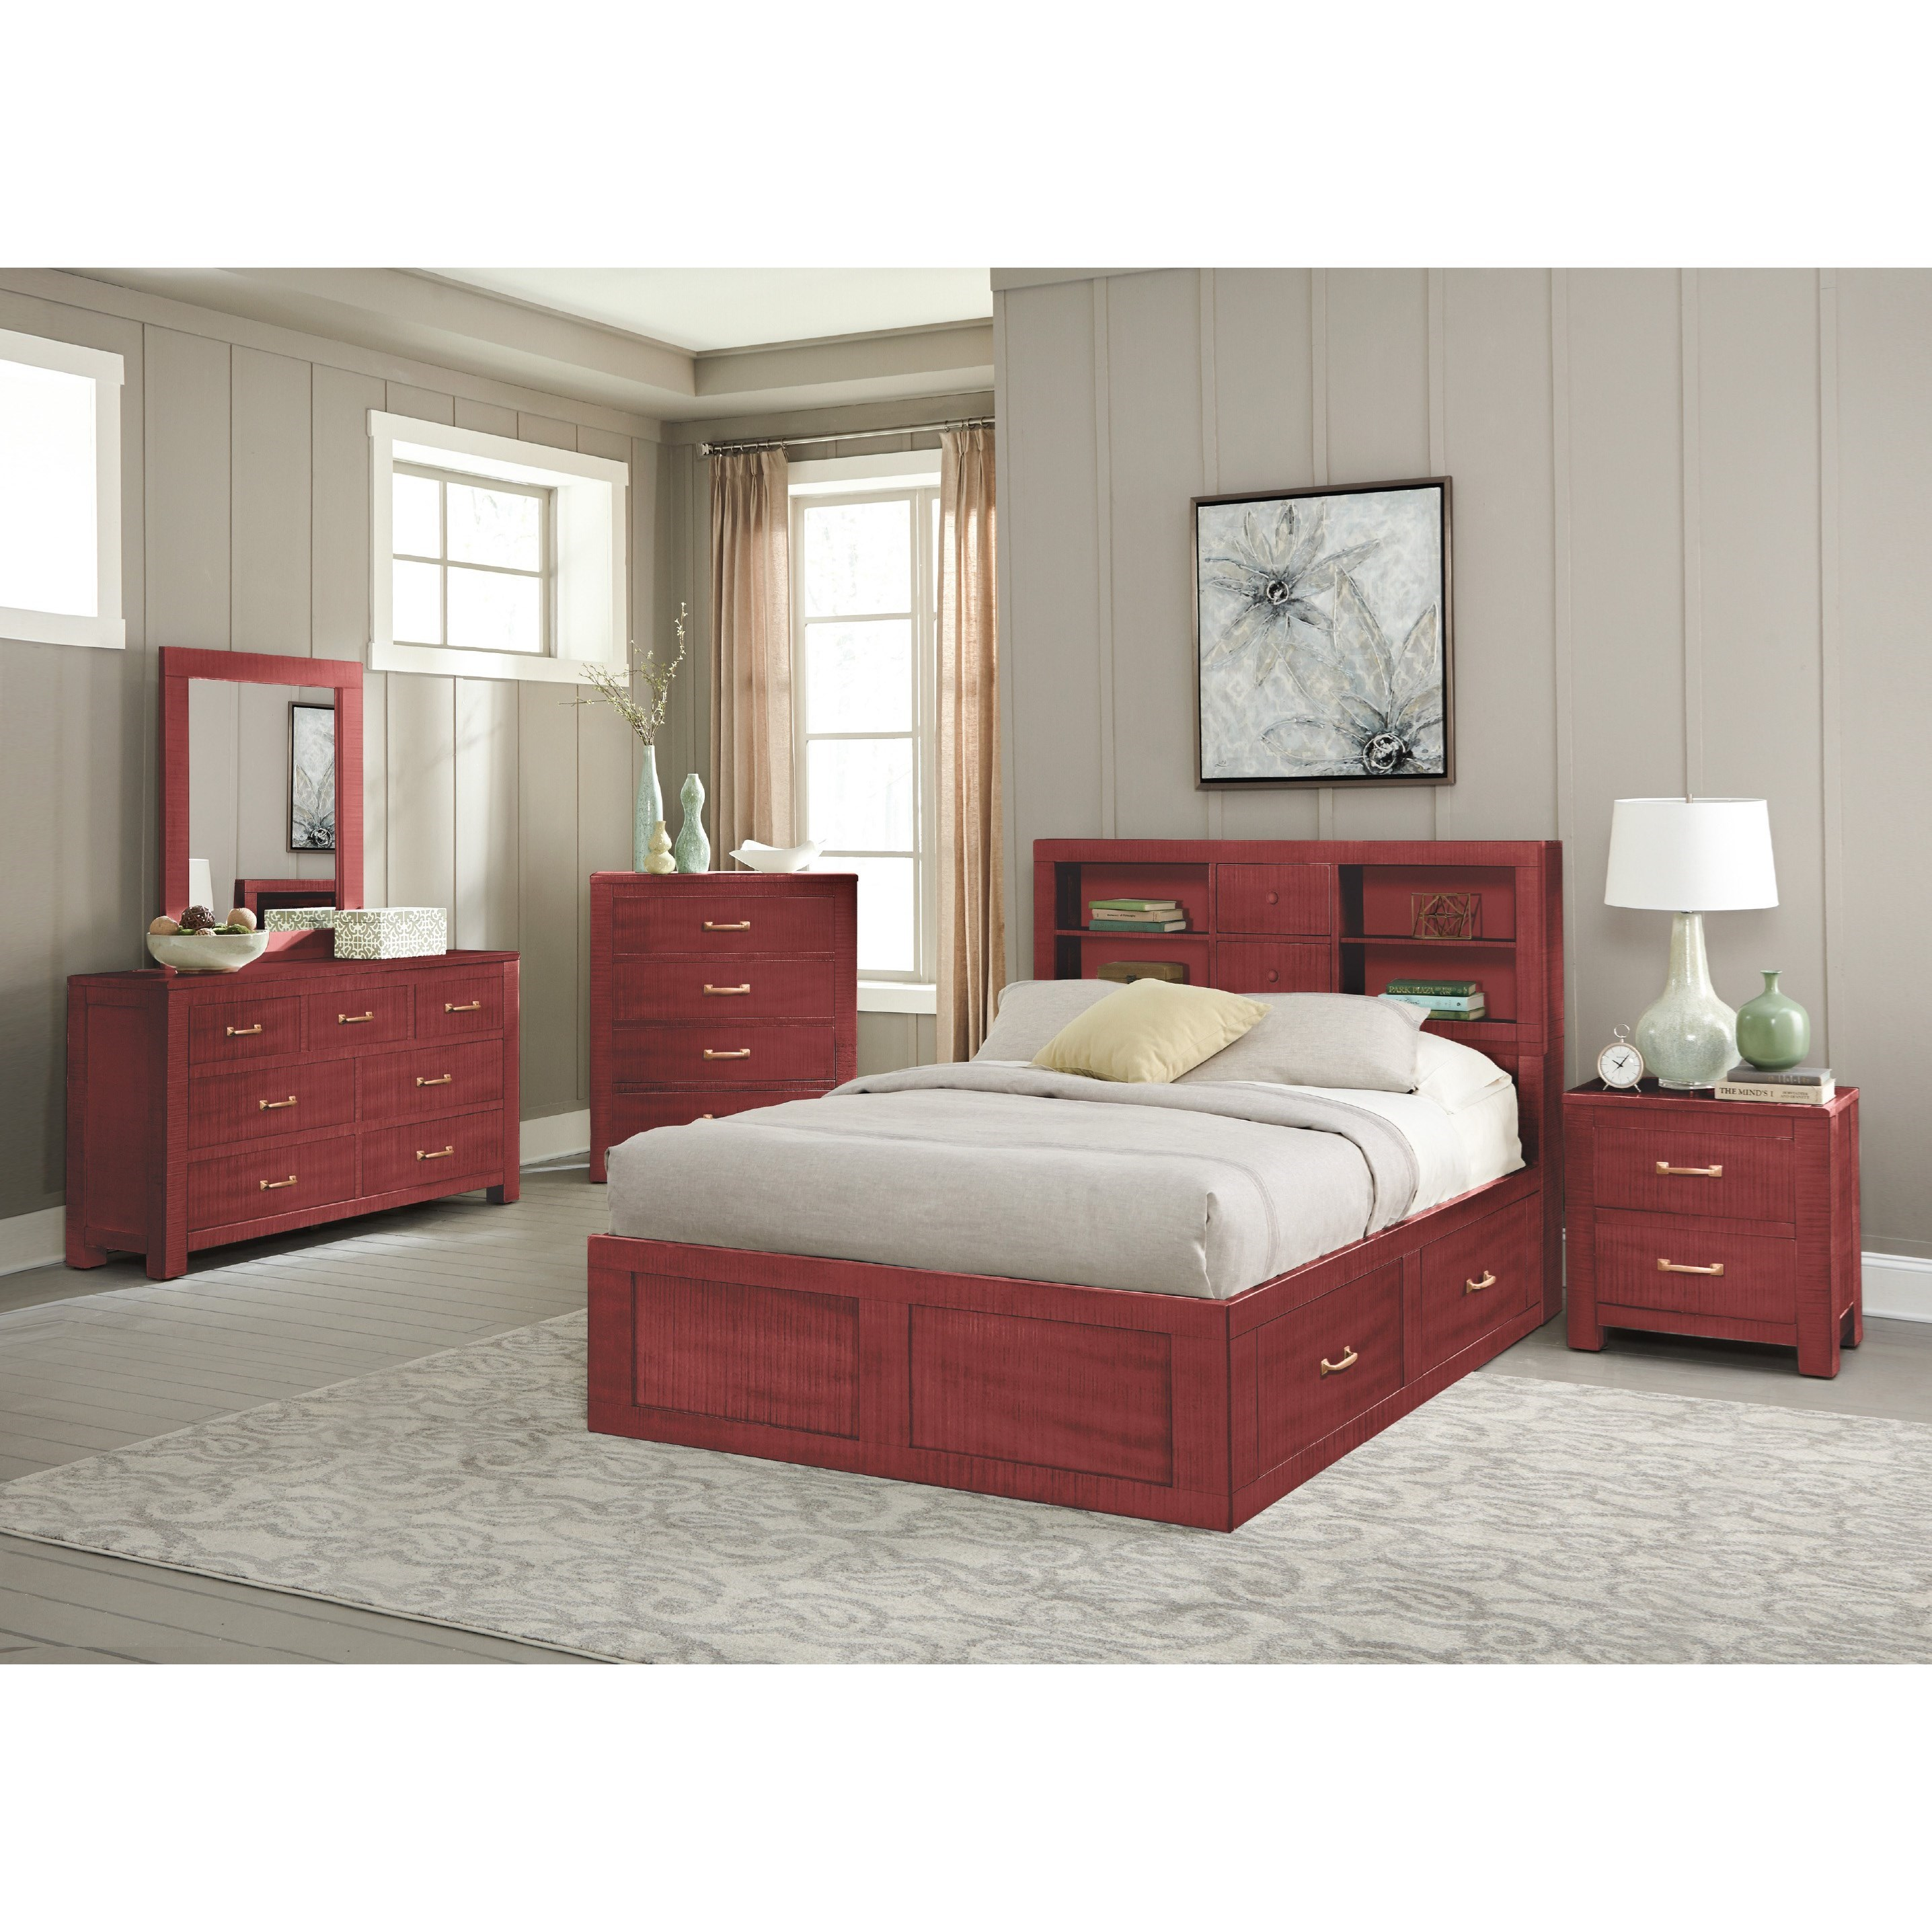 2319 Twin Bedroom Group by Sunny Designs at Miller Home